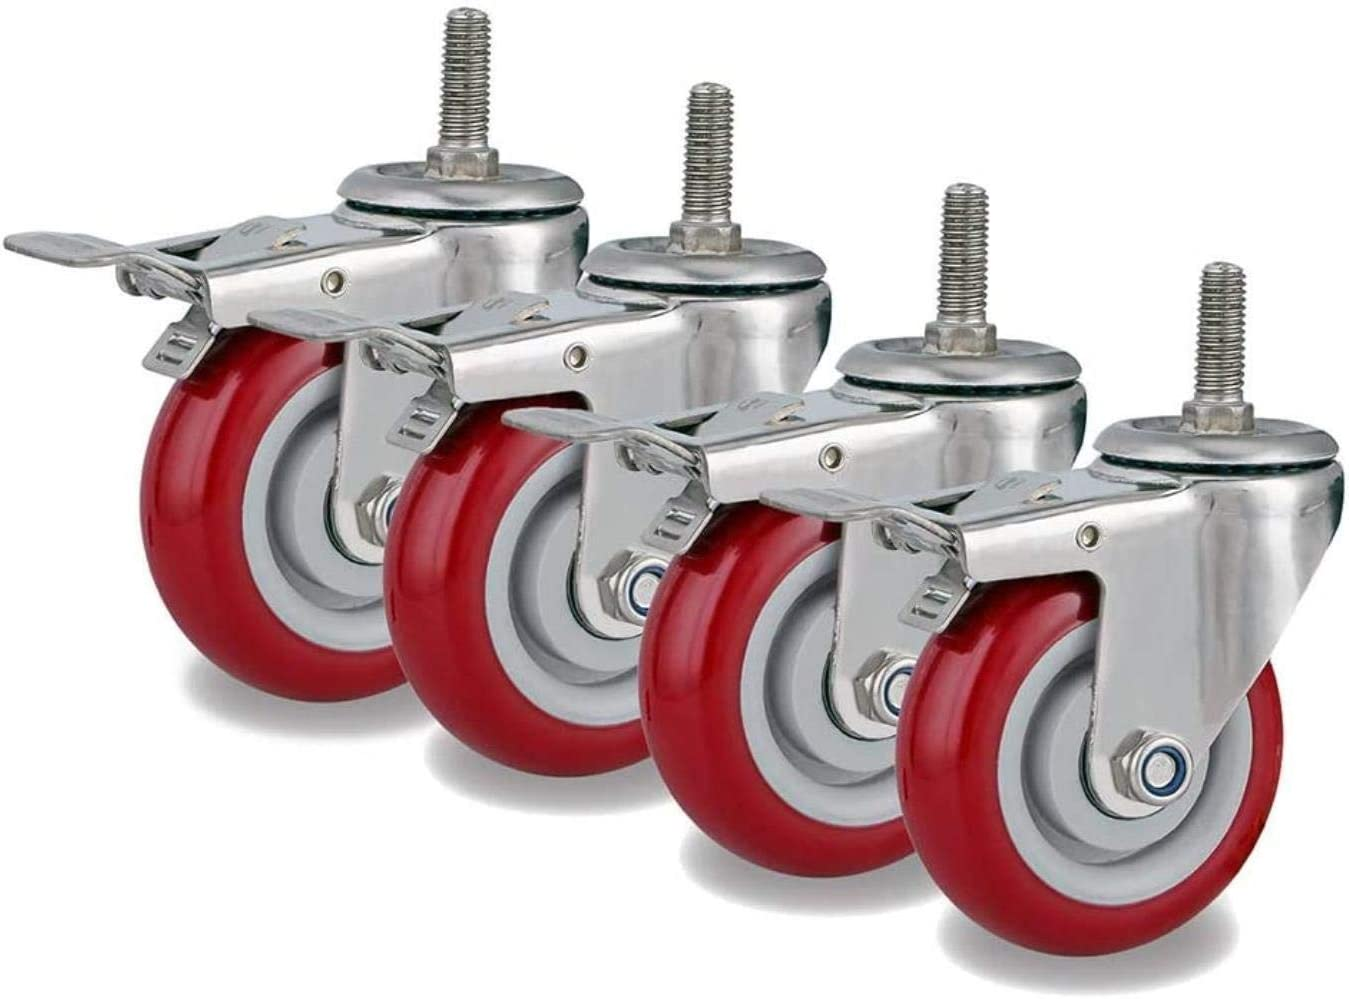 Load Weight 800 Lbs,2 Swivel With Brake Office Chair Caster Wheels FANYF Swivel Casters X4 2 Brake Casters,63 Red Furniture Casters M12x30mm Threaded Rod Transport Castors Silent//Wear Resistant